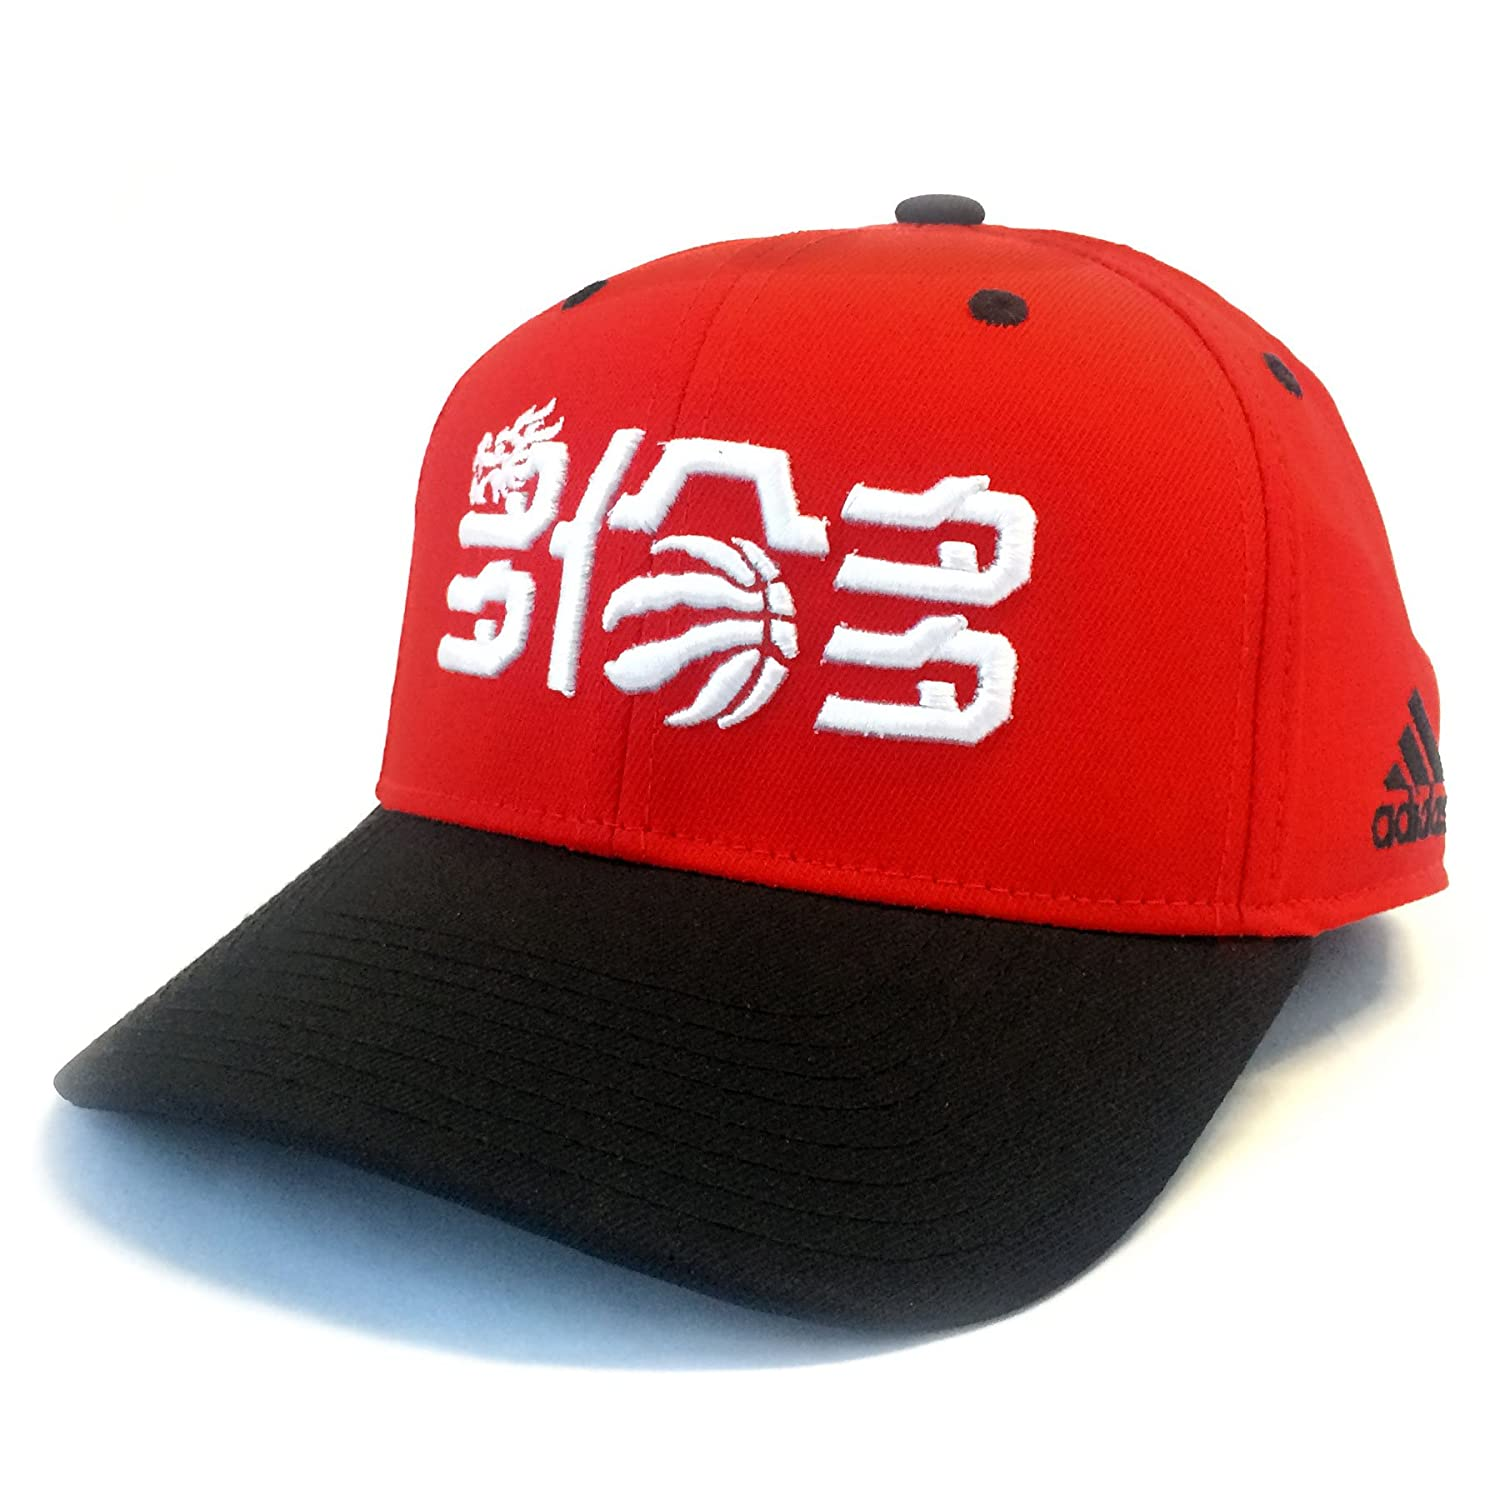 adidas BW2238 NBA Toronto Raptors Chinese Year Structured Adjustable ... 0a7c680362d